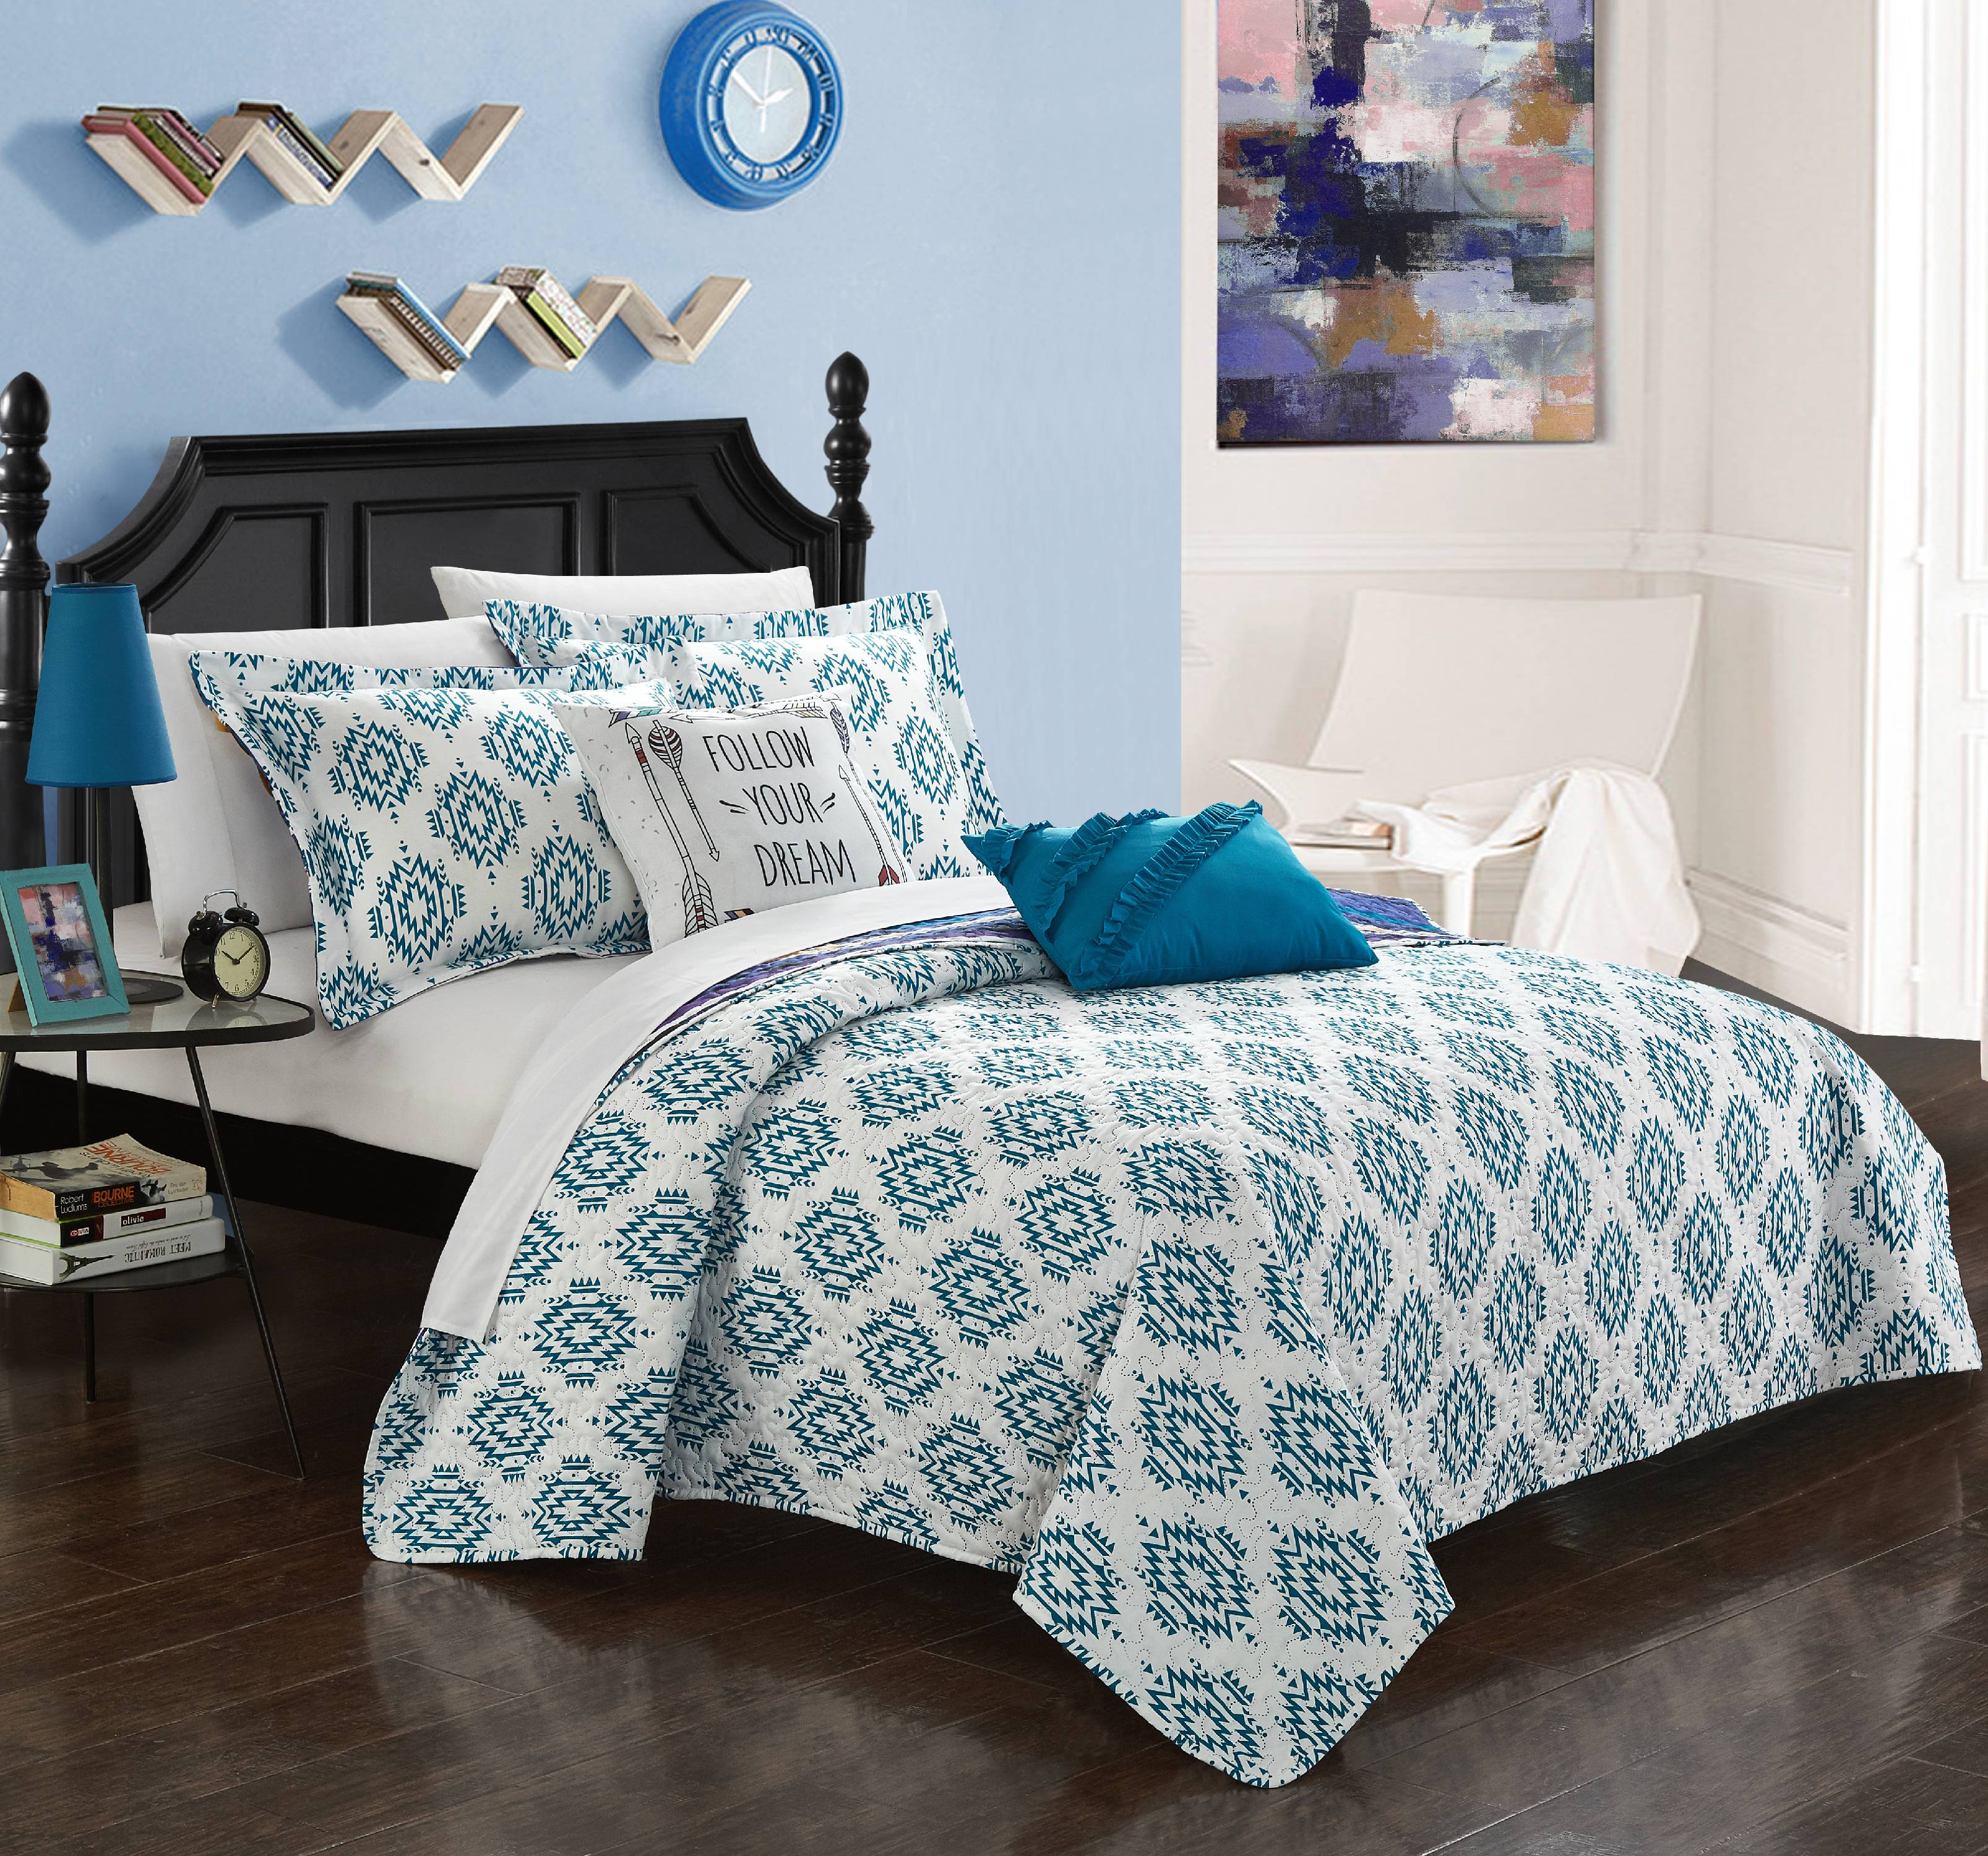 Chic Home Kammi 7 Piece Reversible Bed in a Bag Quilt Cover Set